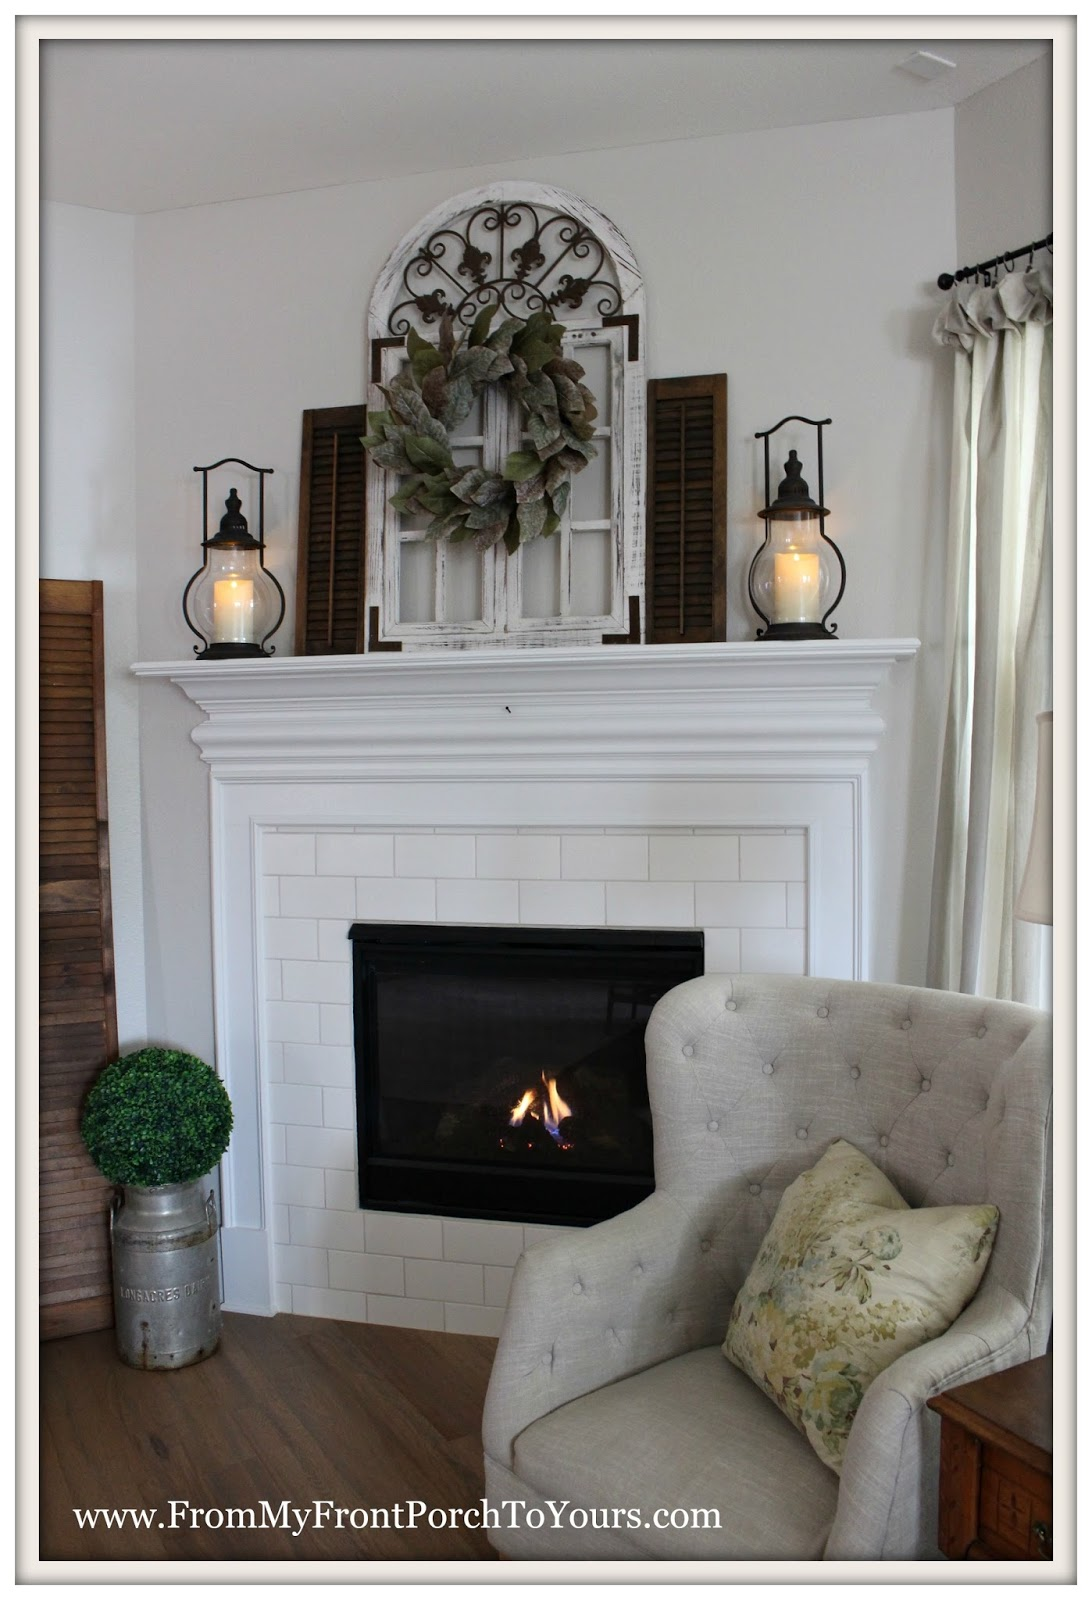 From My Front Porch To Yours: Farmhouse Fireplace Mantel ...